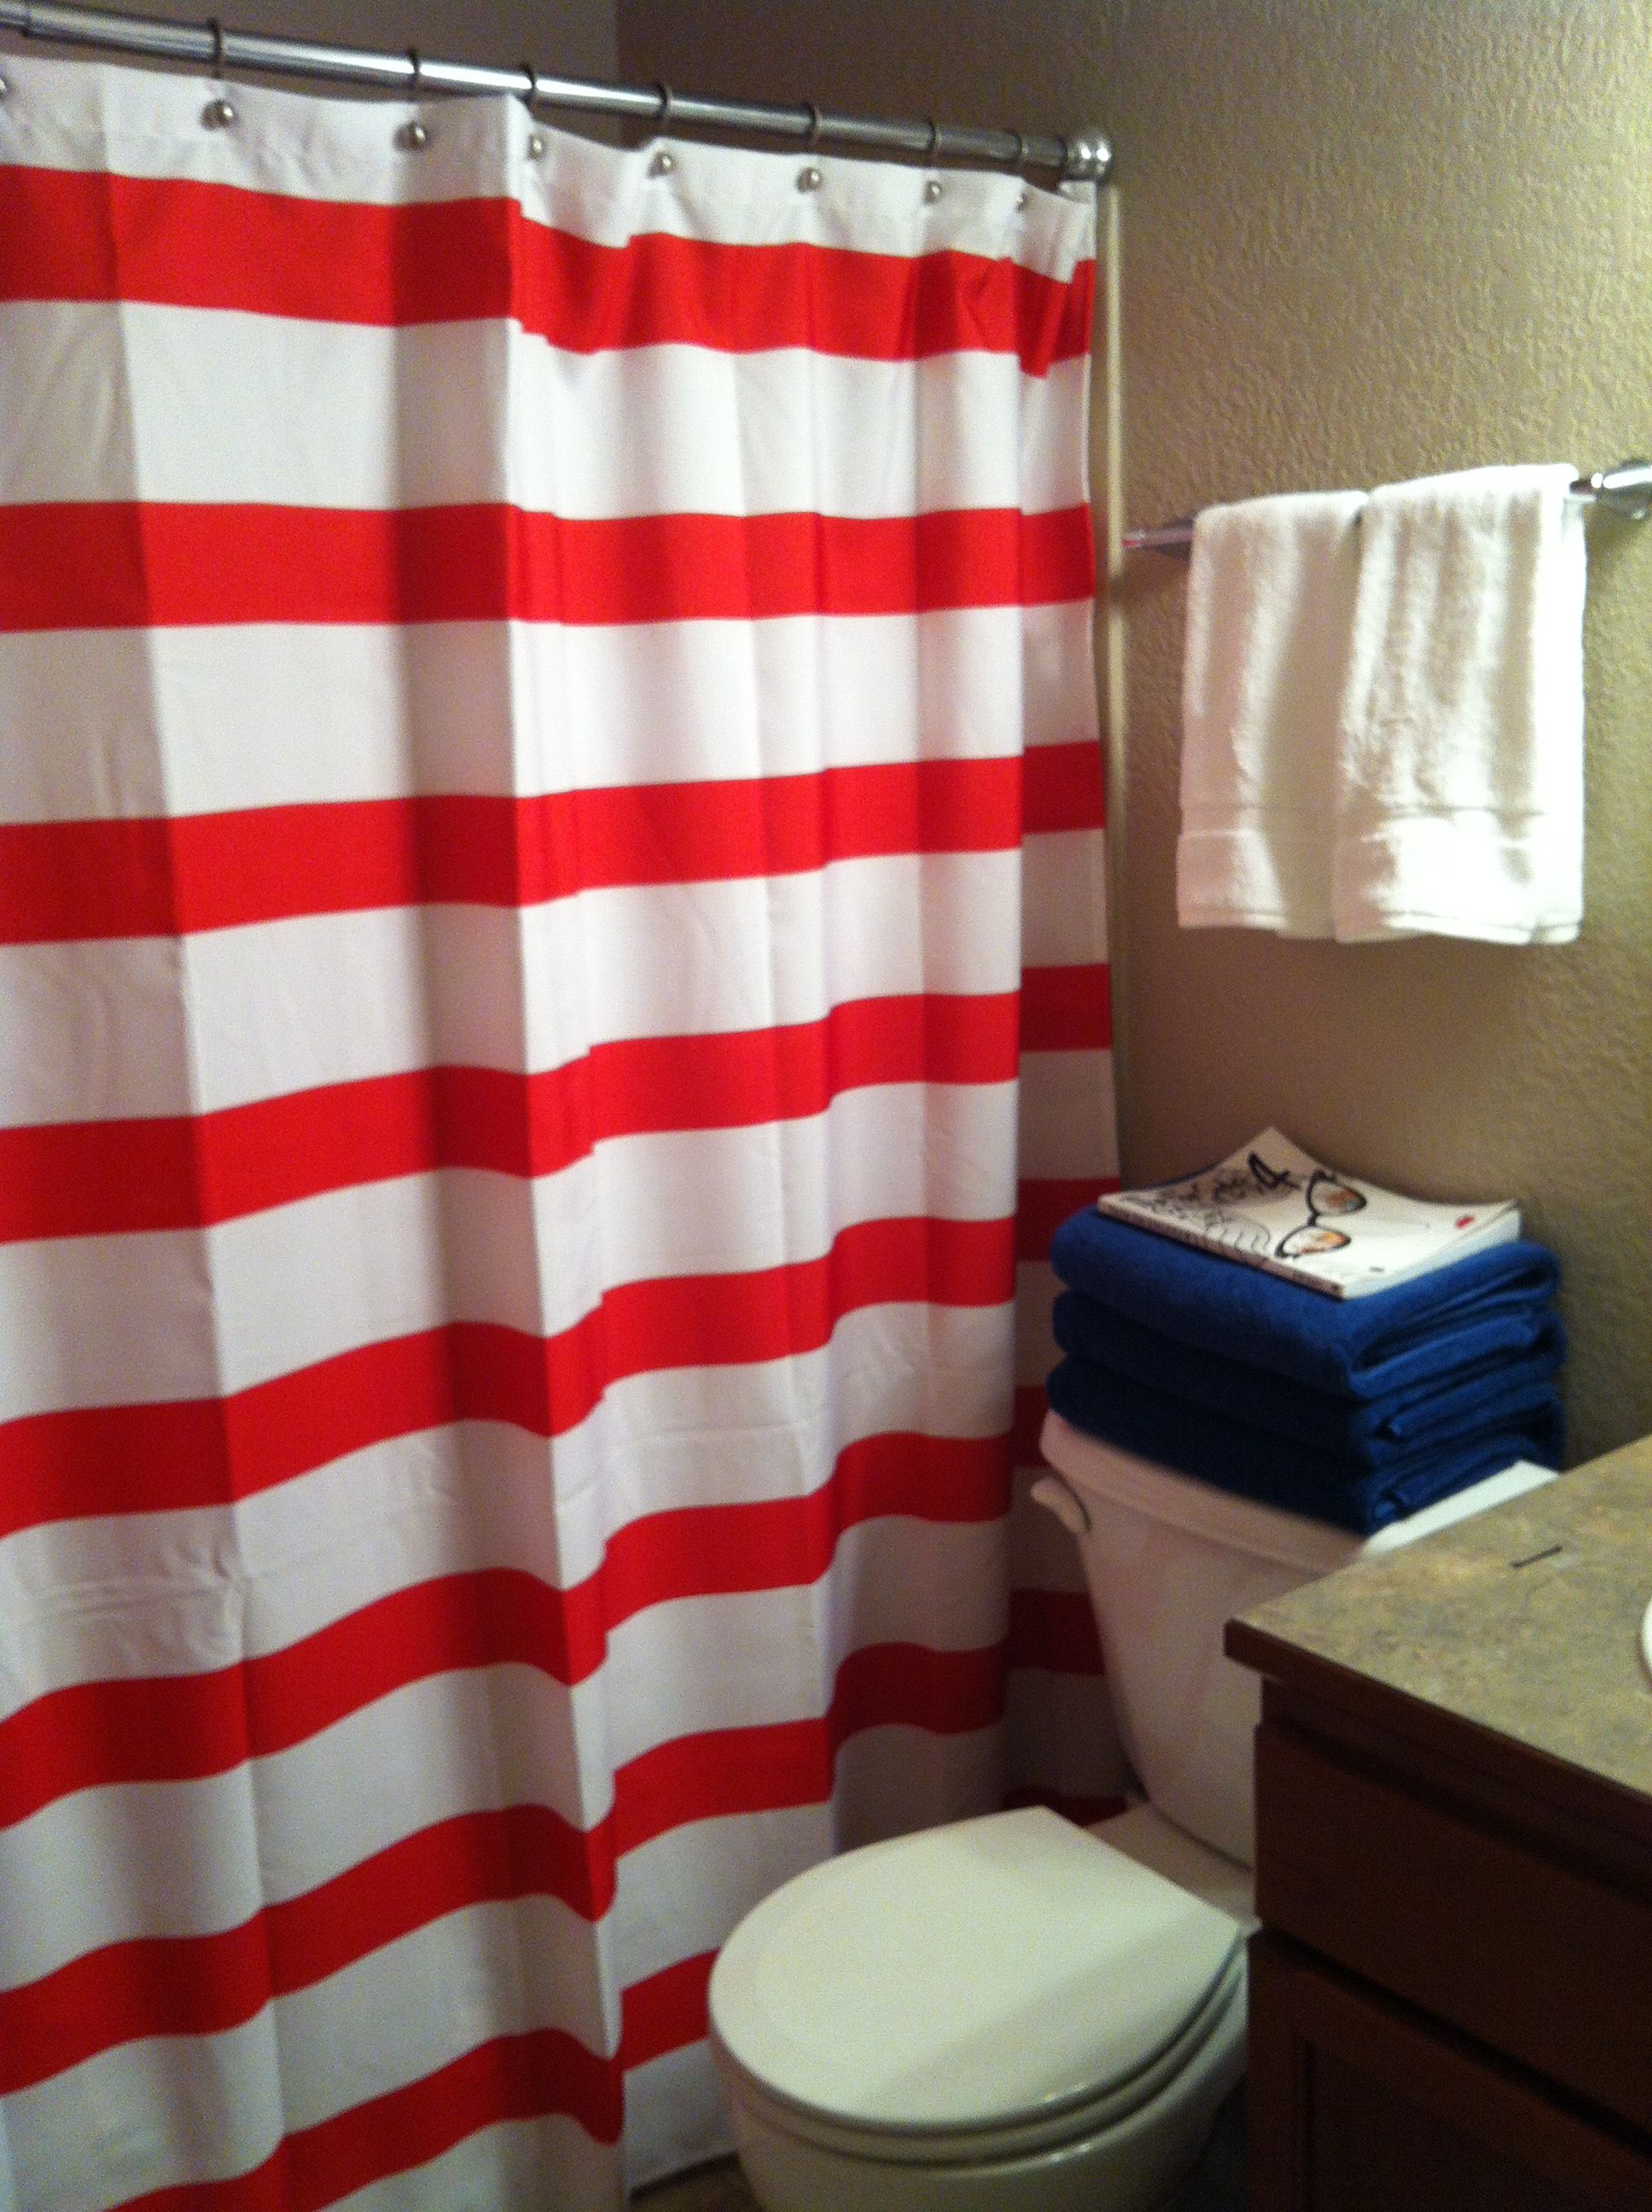 Hey You Have This Shower Curtain Though Your Stripes Seem Thicker